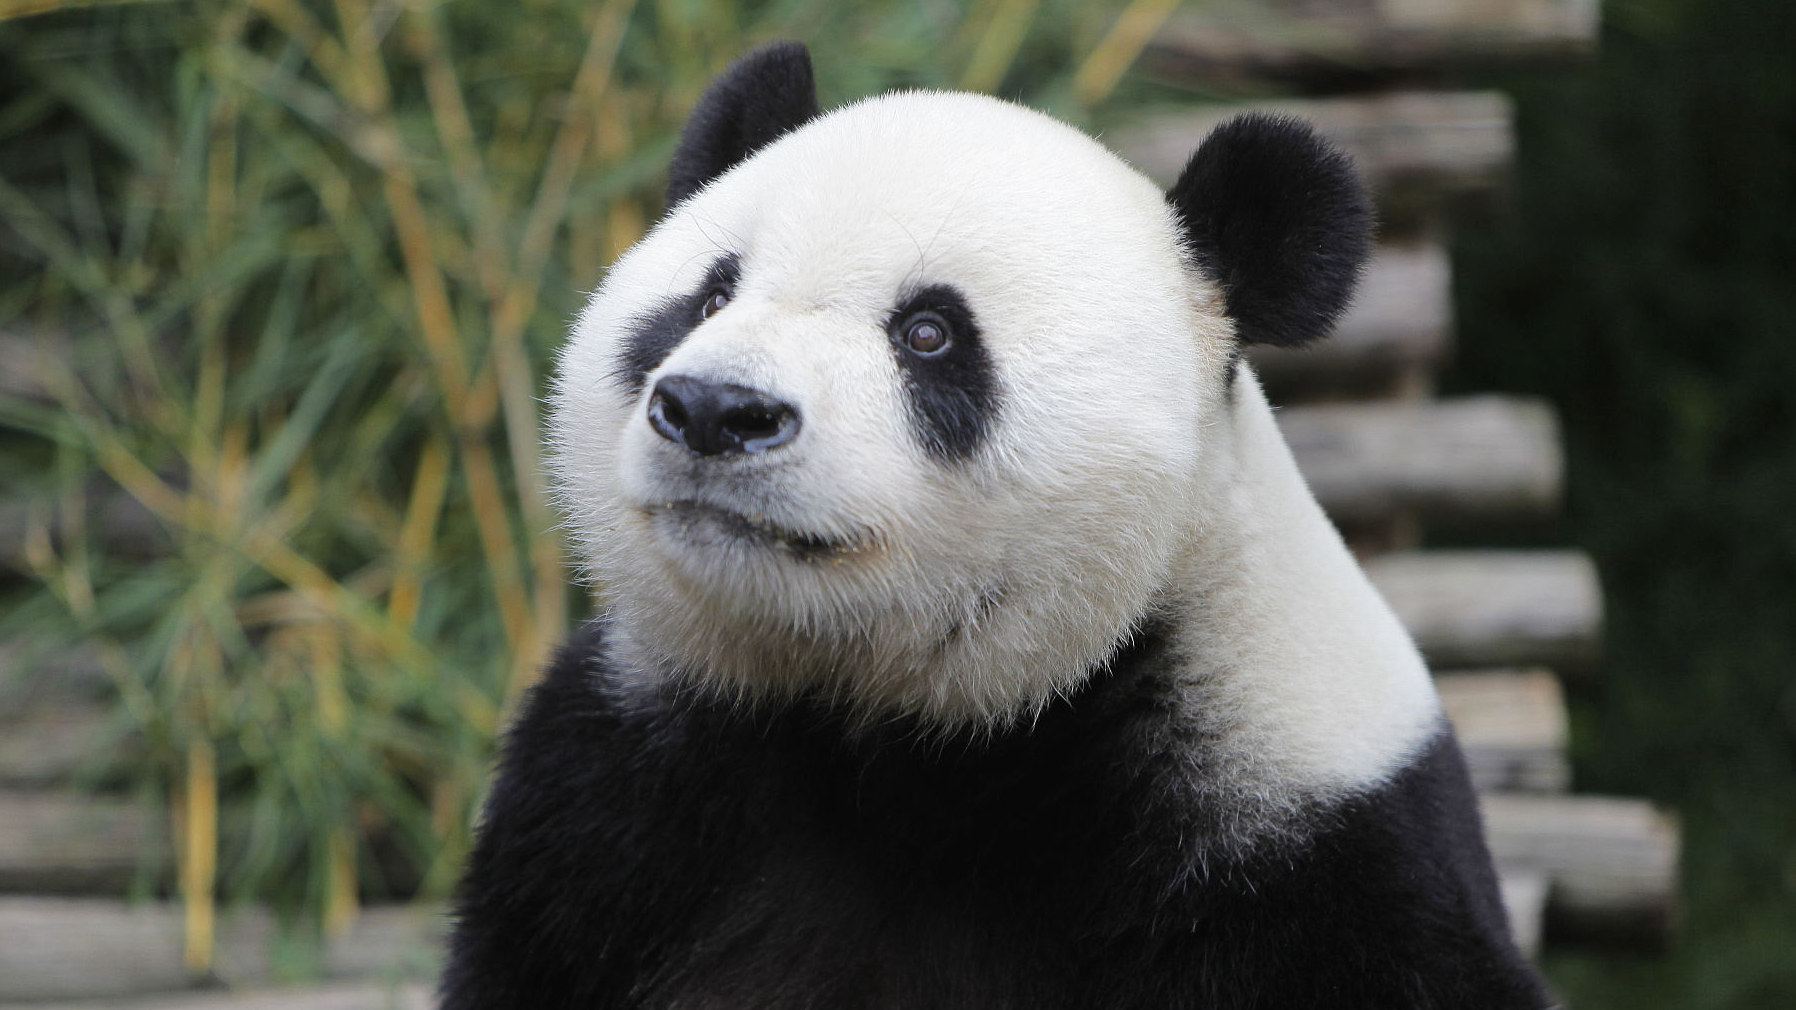 'Giant panda fever' spreads in Indonesia